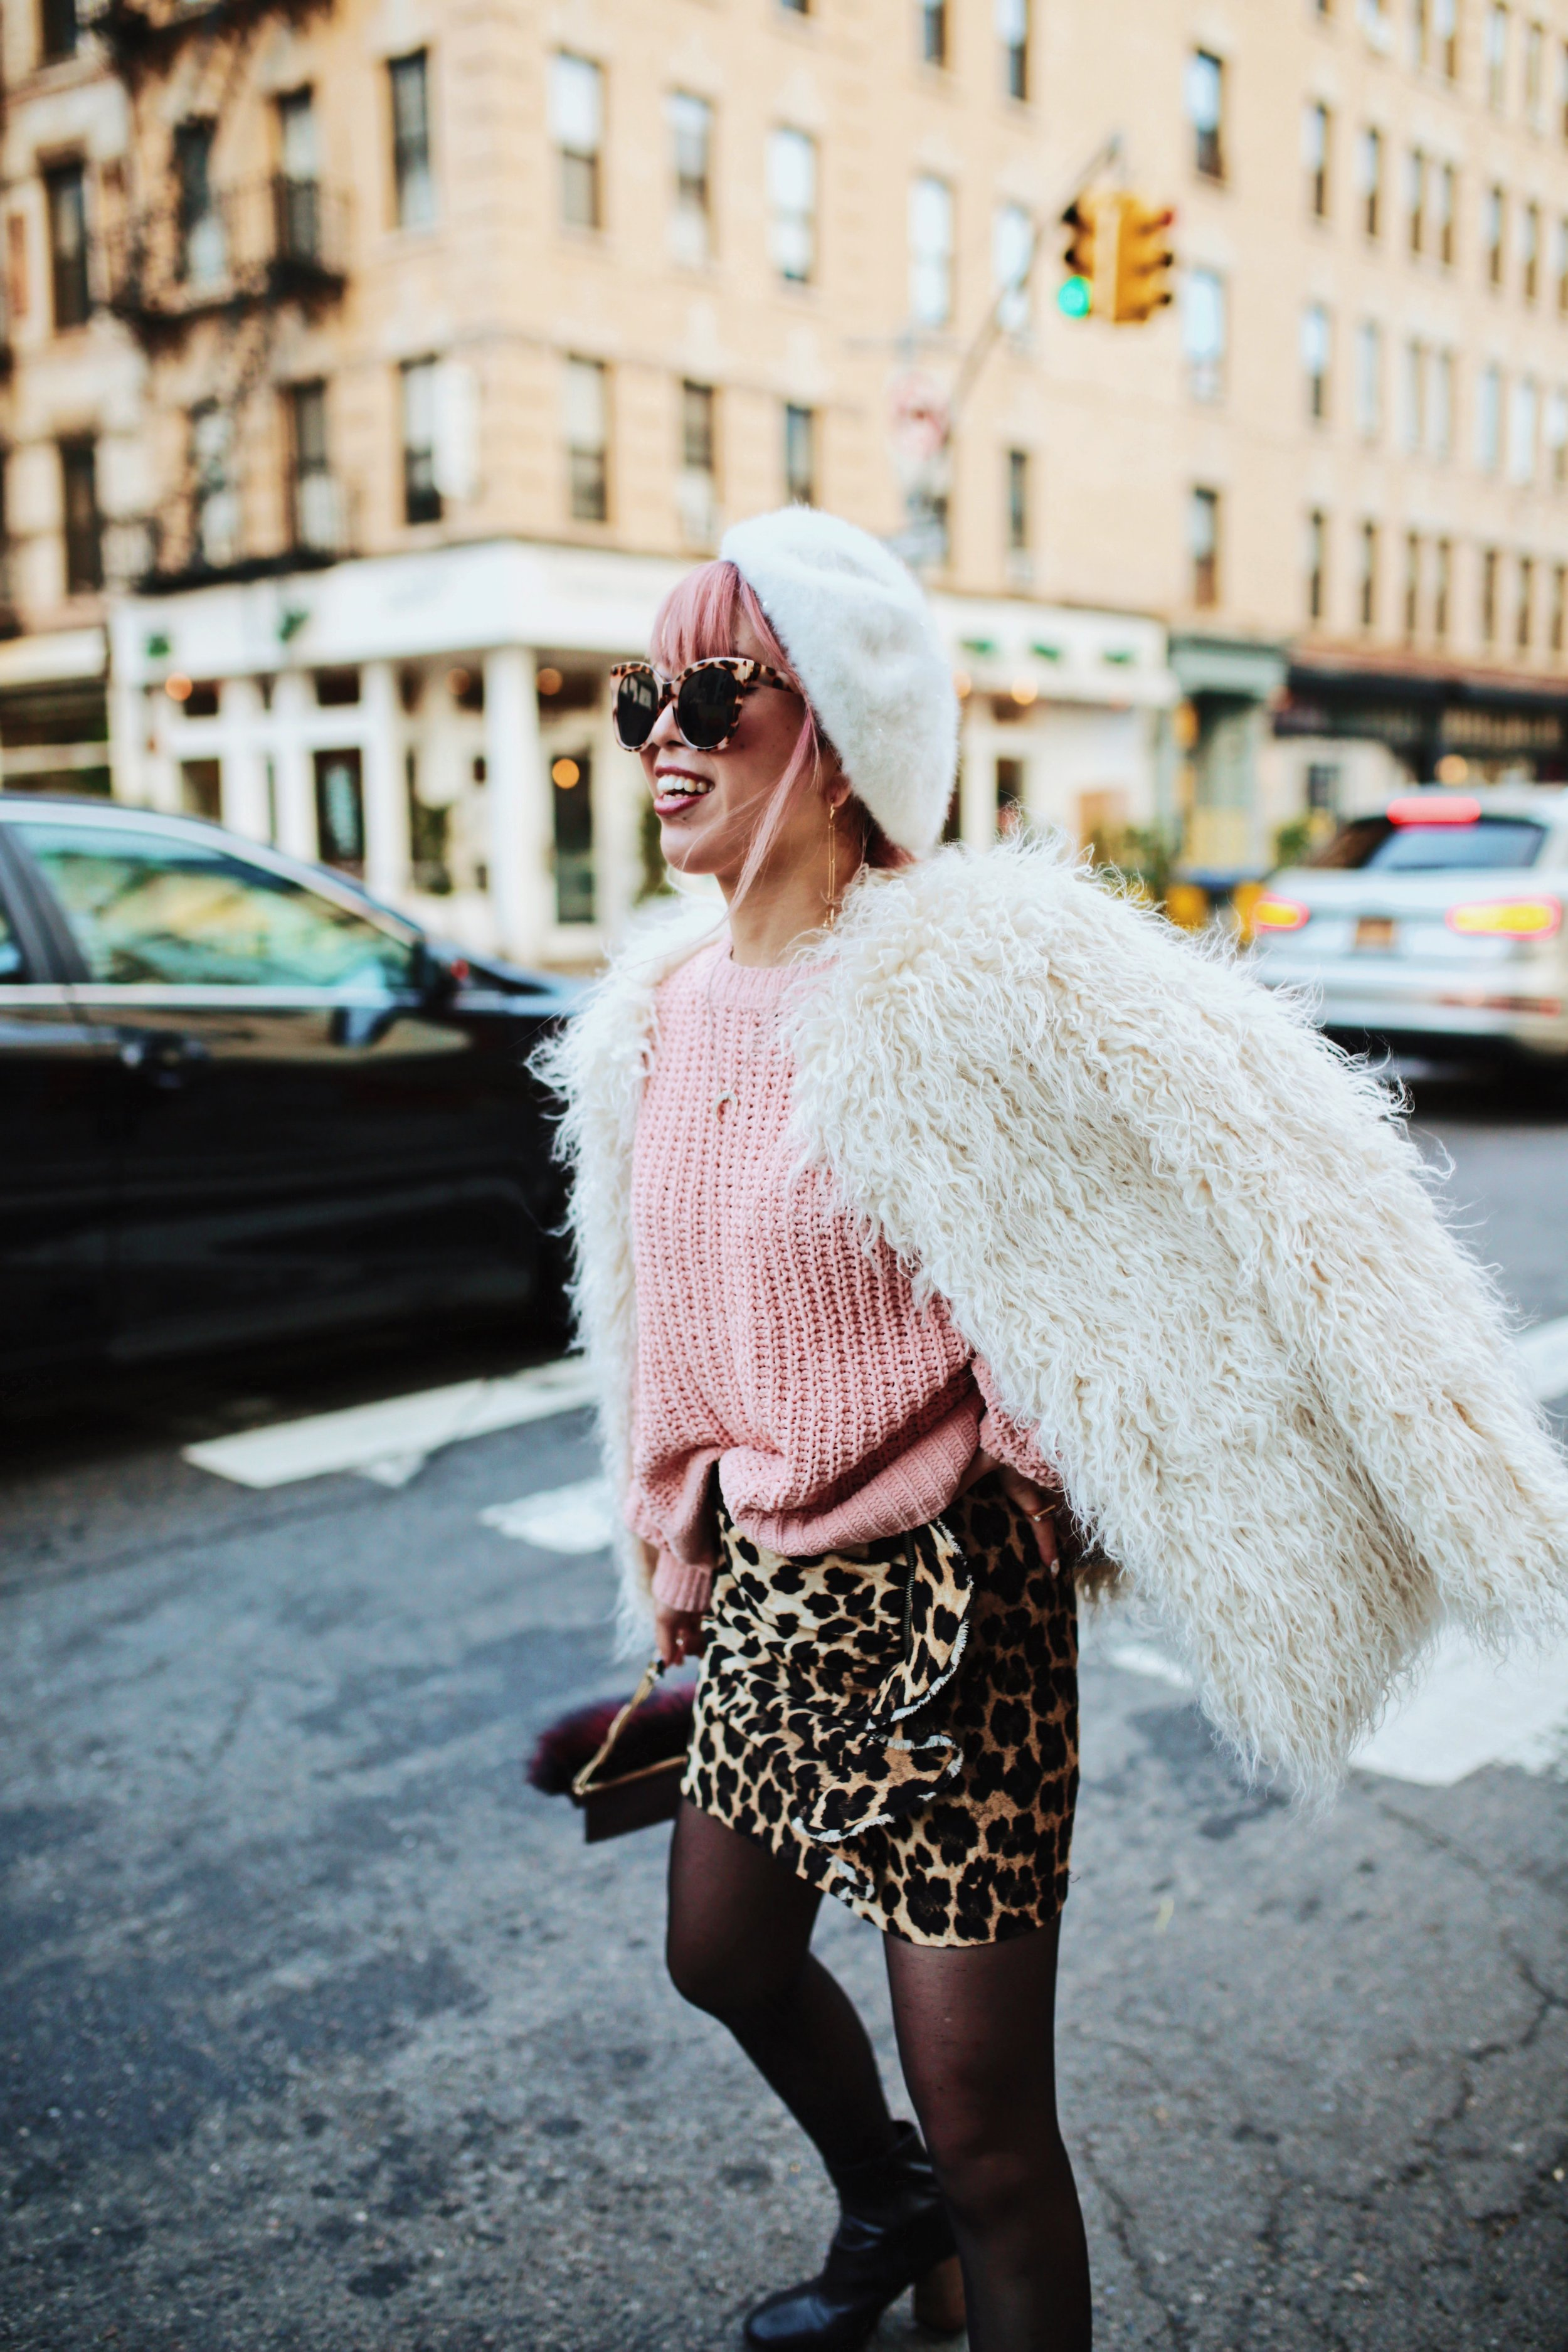 H&M Pink Sweater-Zara leopar prins mini skirt-H&M white shaggy coat-DVF fur bag-anthropologie white beret-Urban Outfitters Sunglasses-ALDO Ankle Boots-Mango Earrings-Aikas Love Closet-New York City-Pink Hair-Style Fashion Blogger-Seattle-Japanese_Petite fashion blogger 28